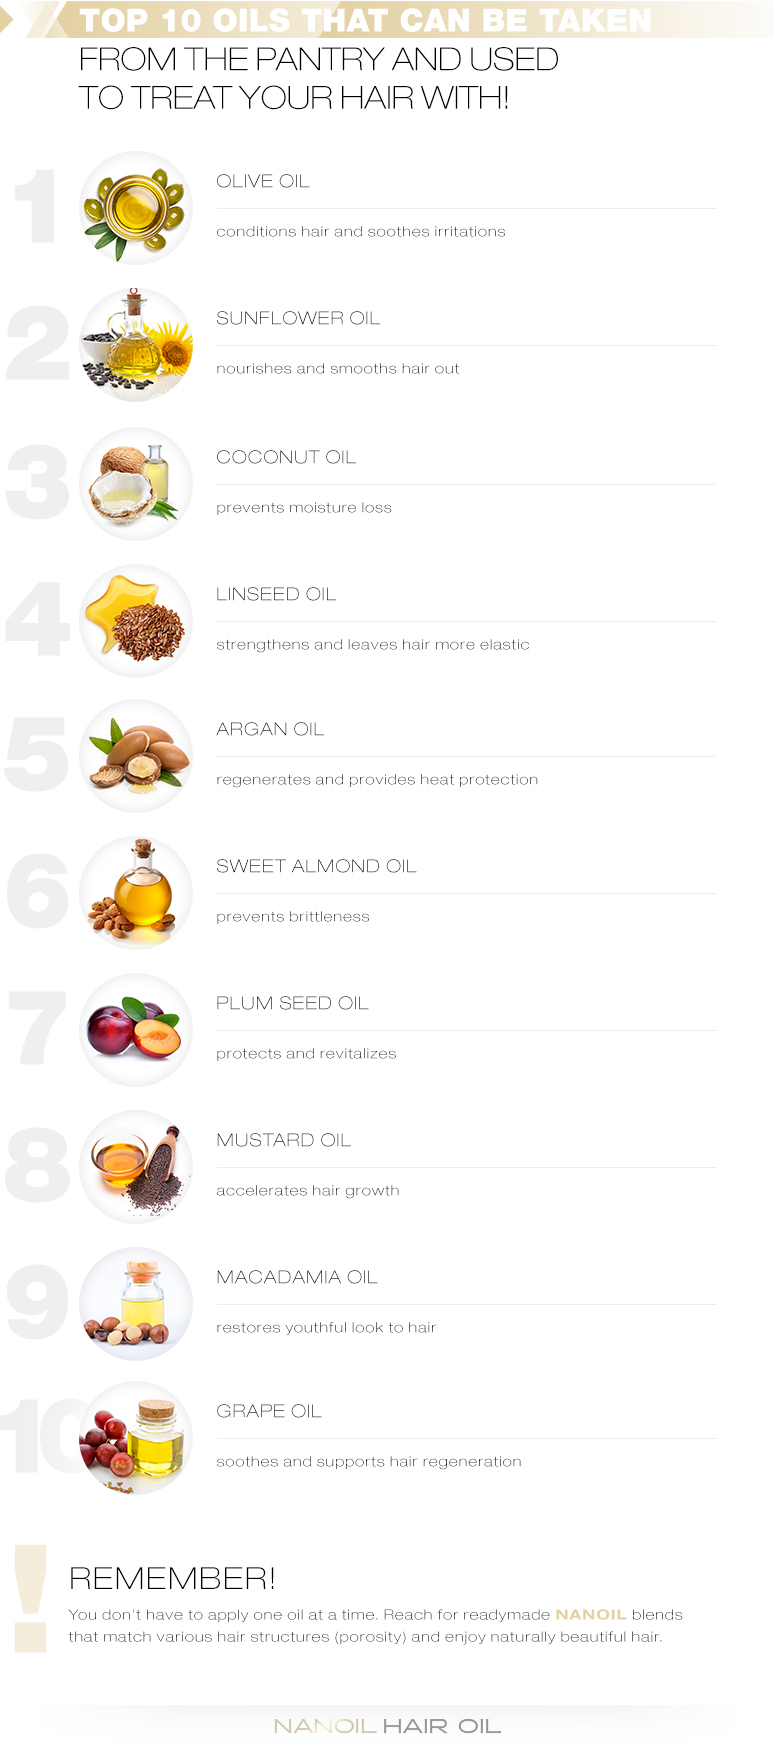 Top 10 oils that can be taken from the pantry and used to treat your hair with!